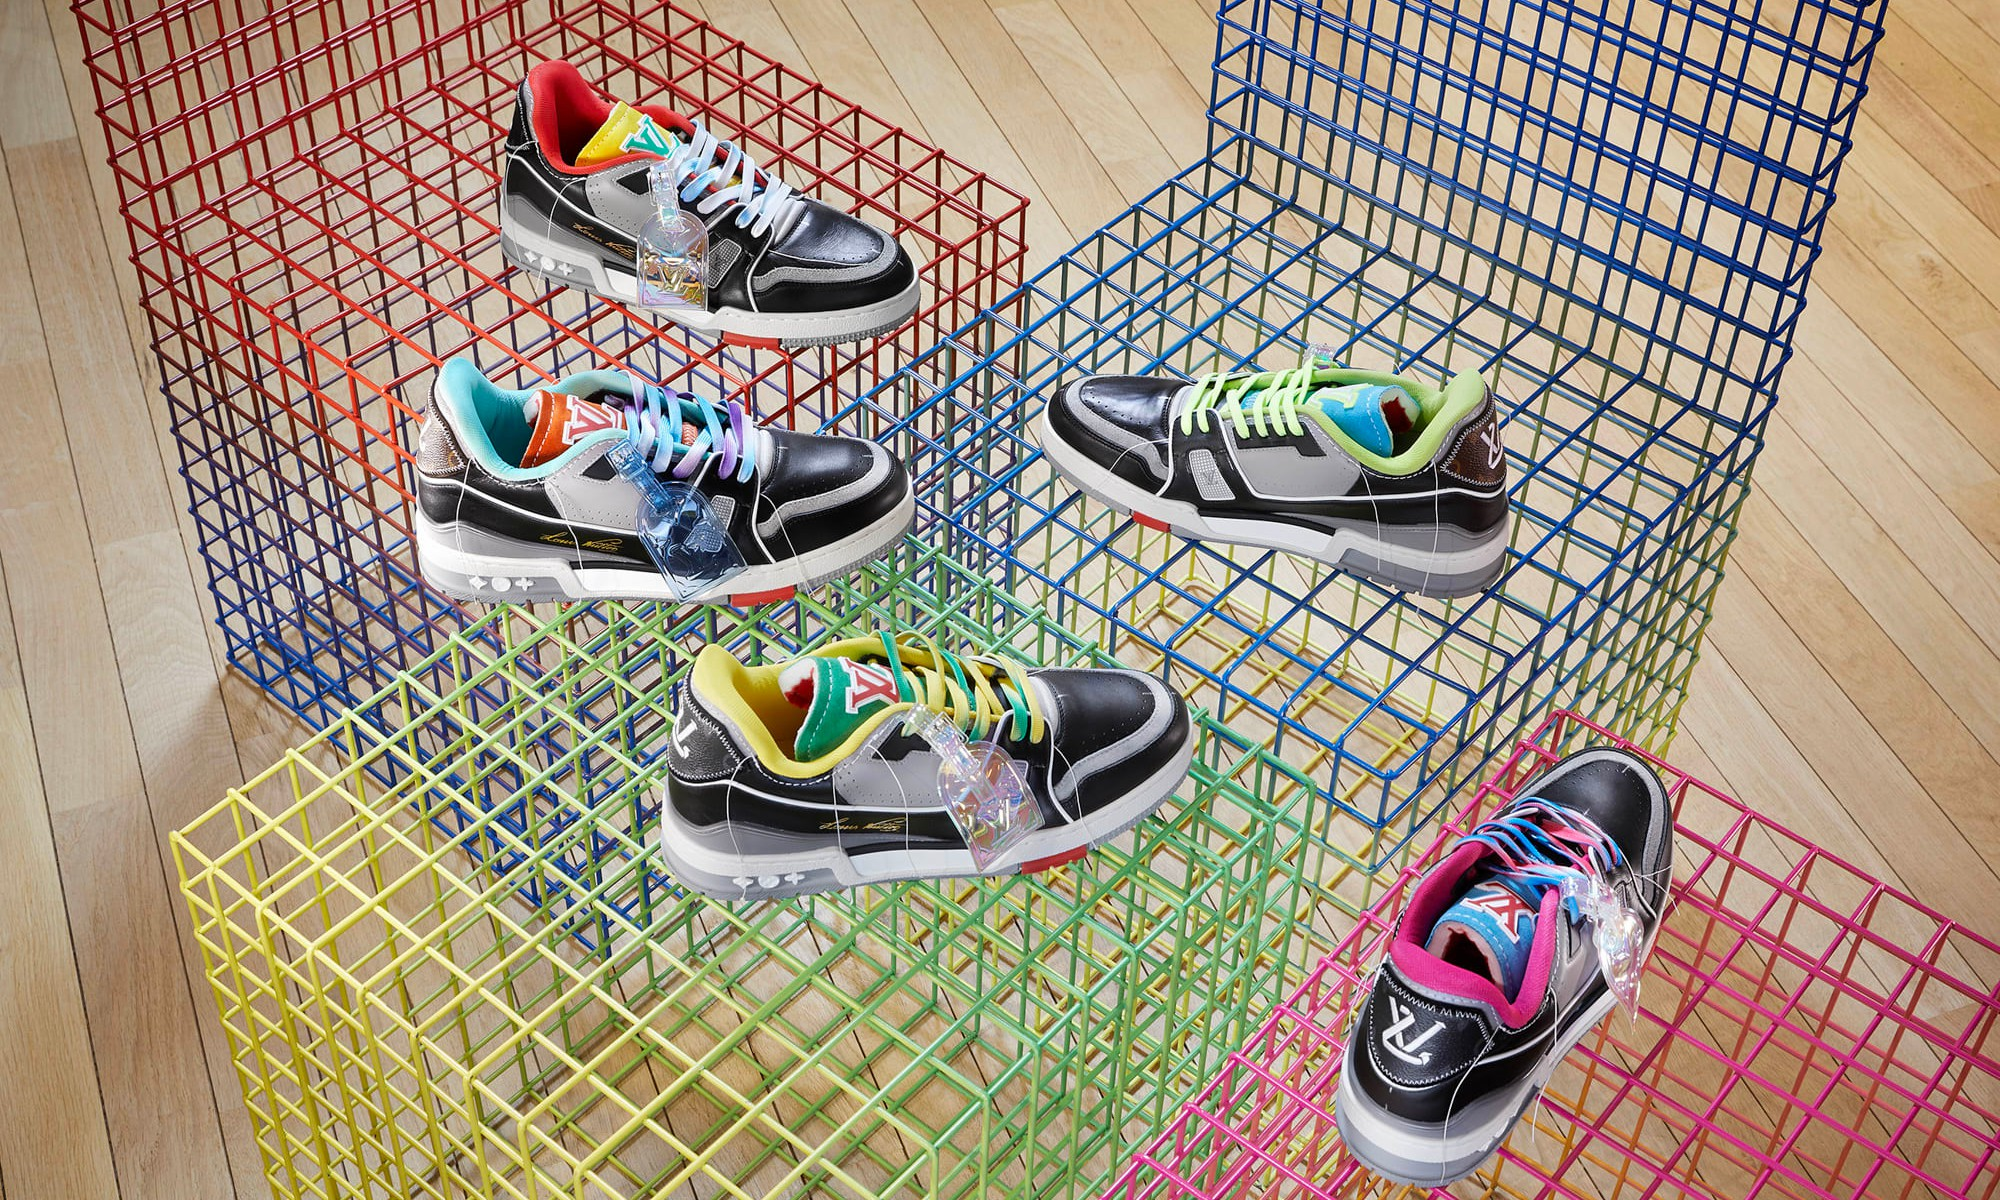 LOUIS VUITTON 发布 2021 春夏系列鞋款「Trainer Upcycling」